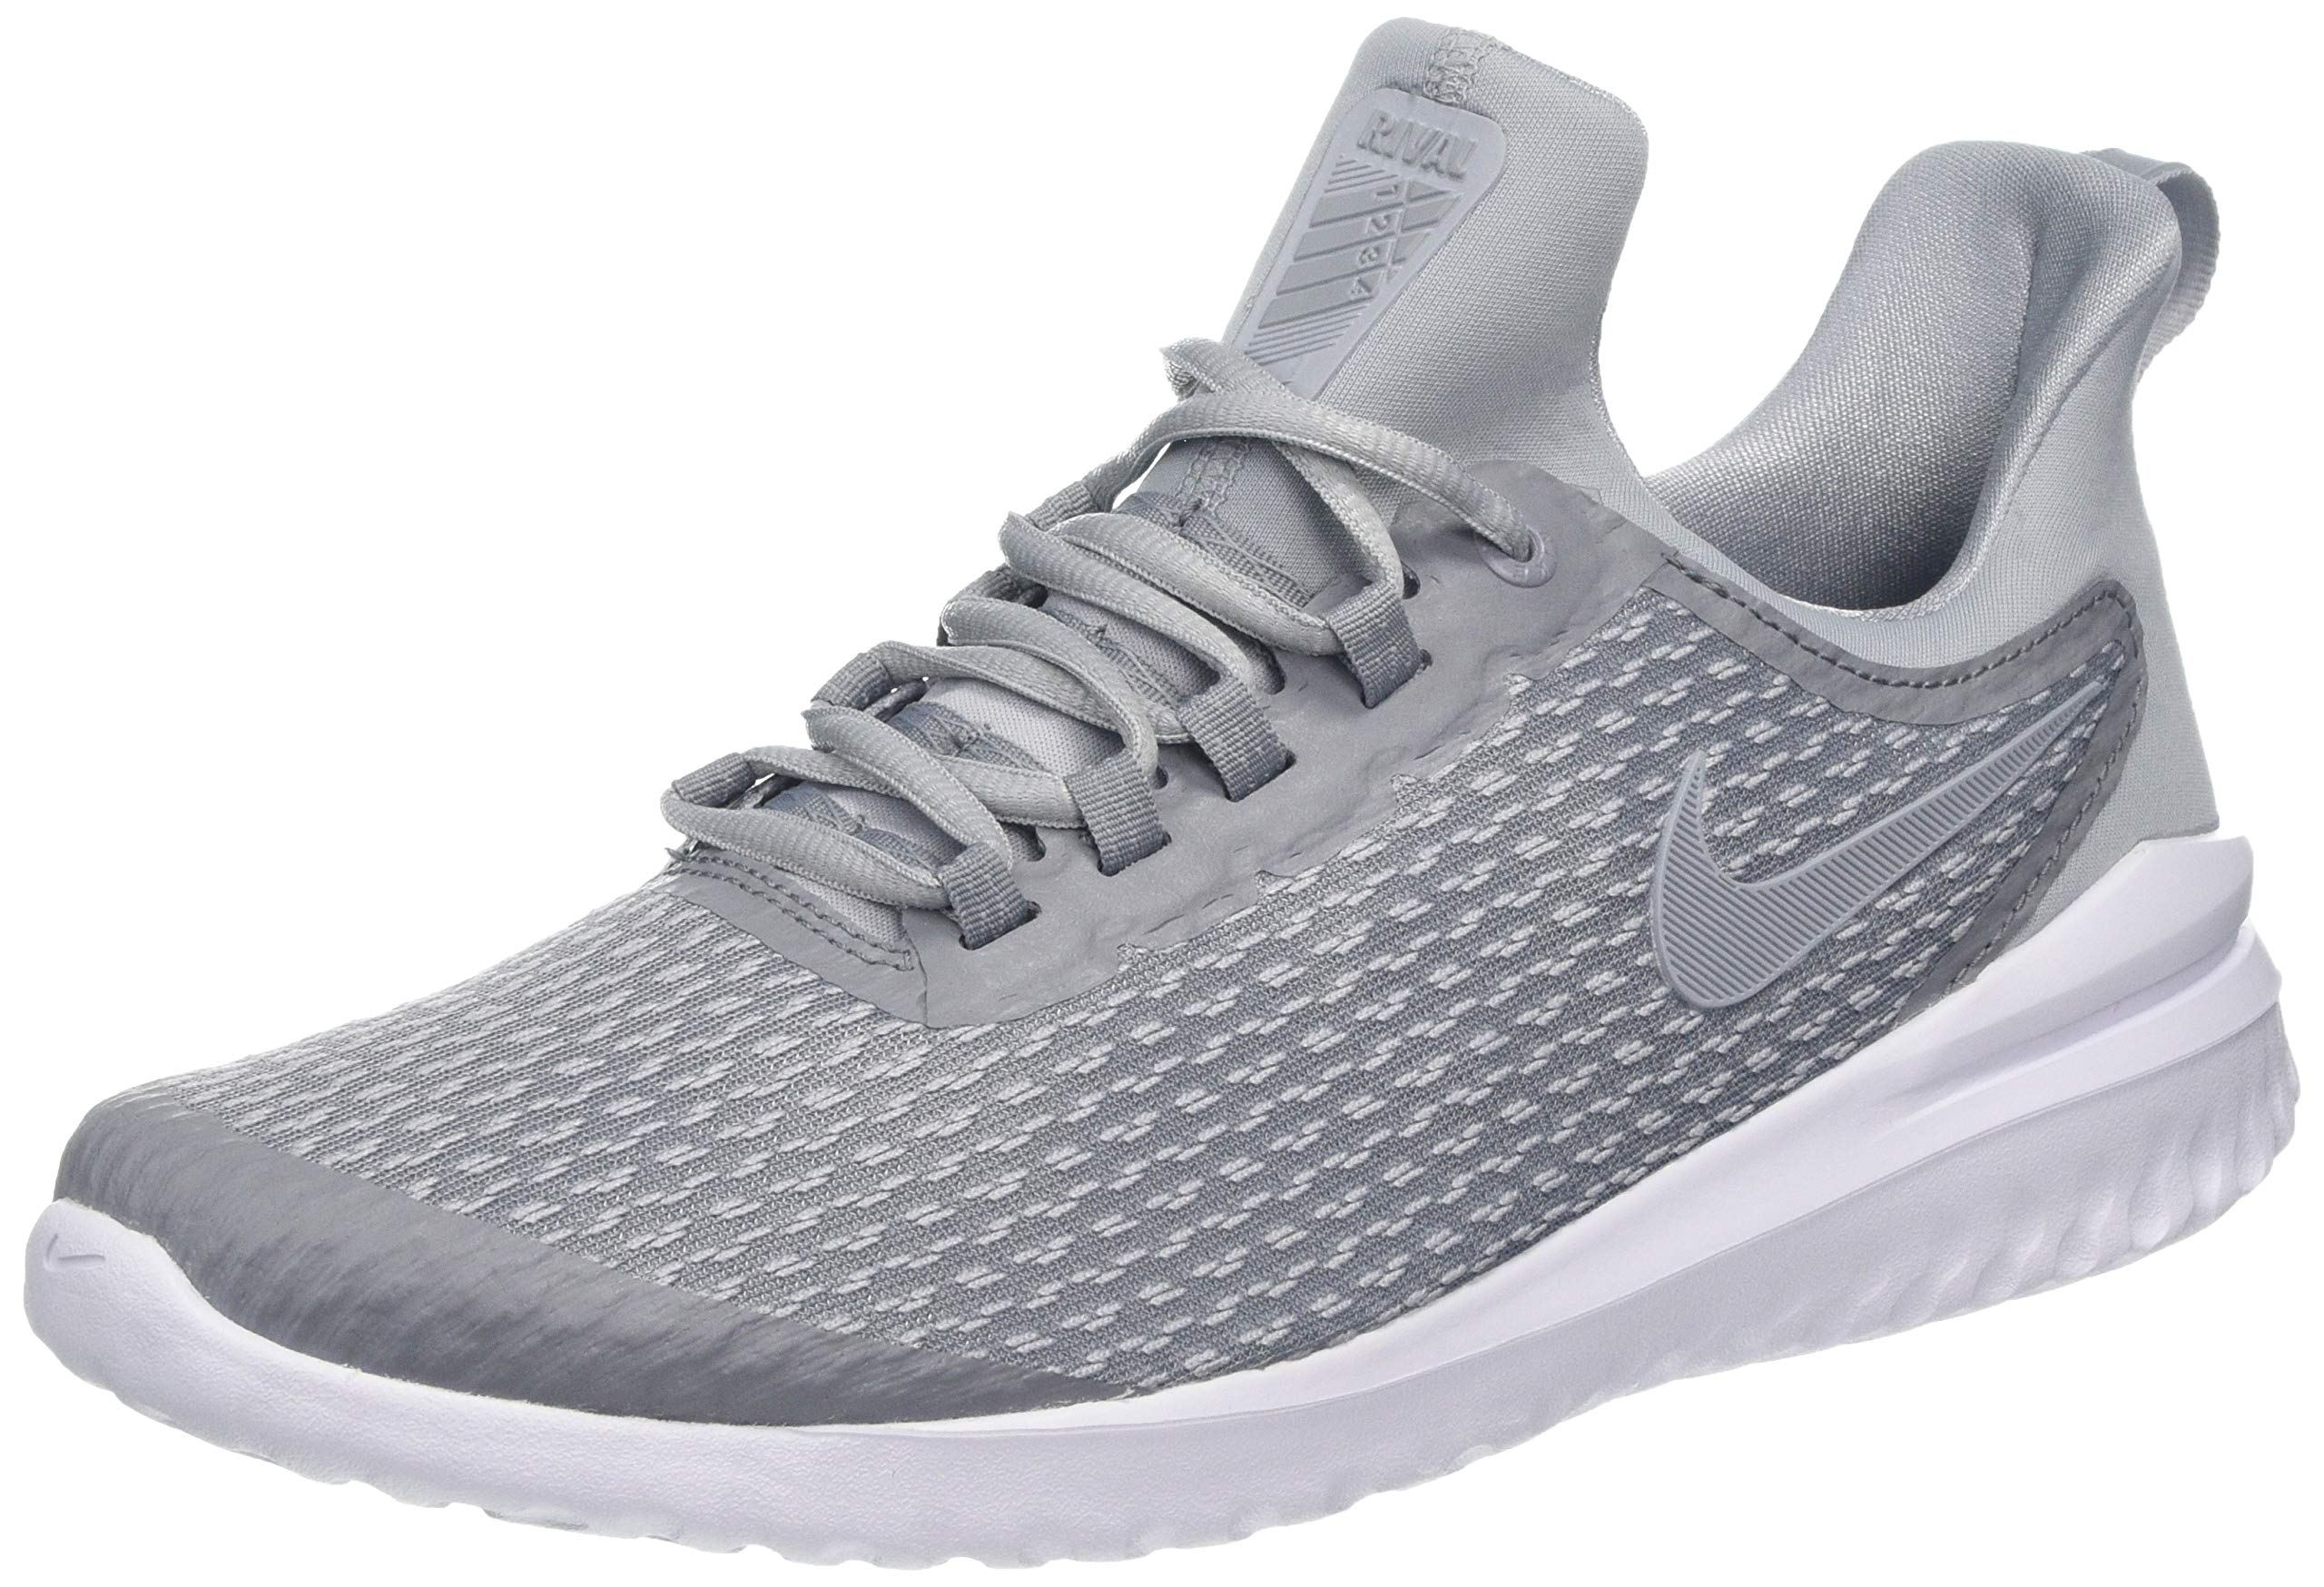 fdec3fd7502803 Galleon - Nike Mens Lunar Hayward Stealth Wolf Grey White Size 12